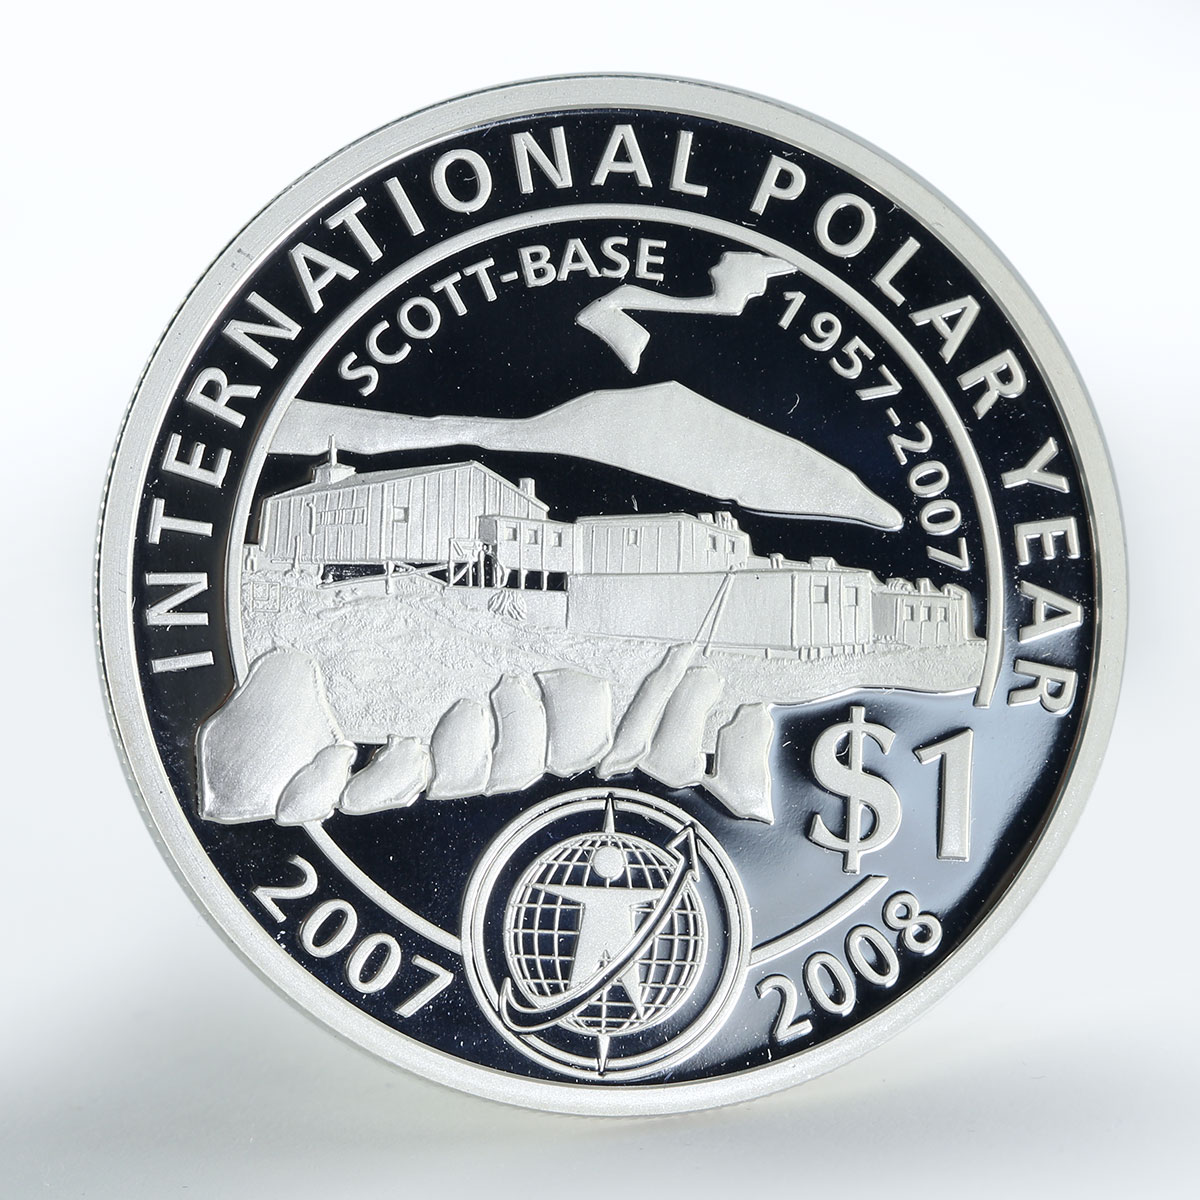 New Zealand 1 dollar Scott Base 1957-2007 proof silver coin 2007